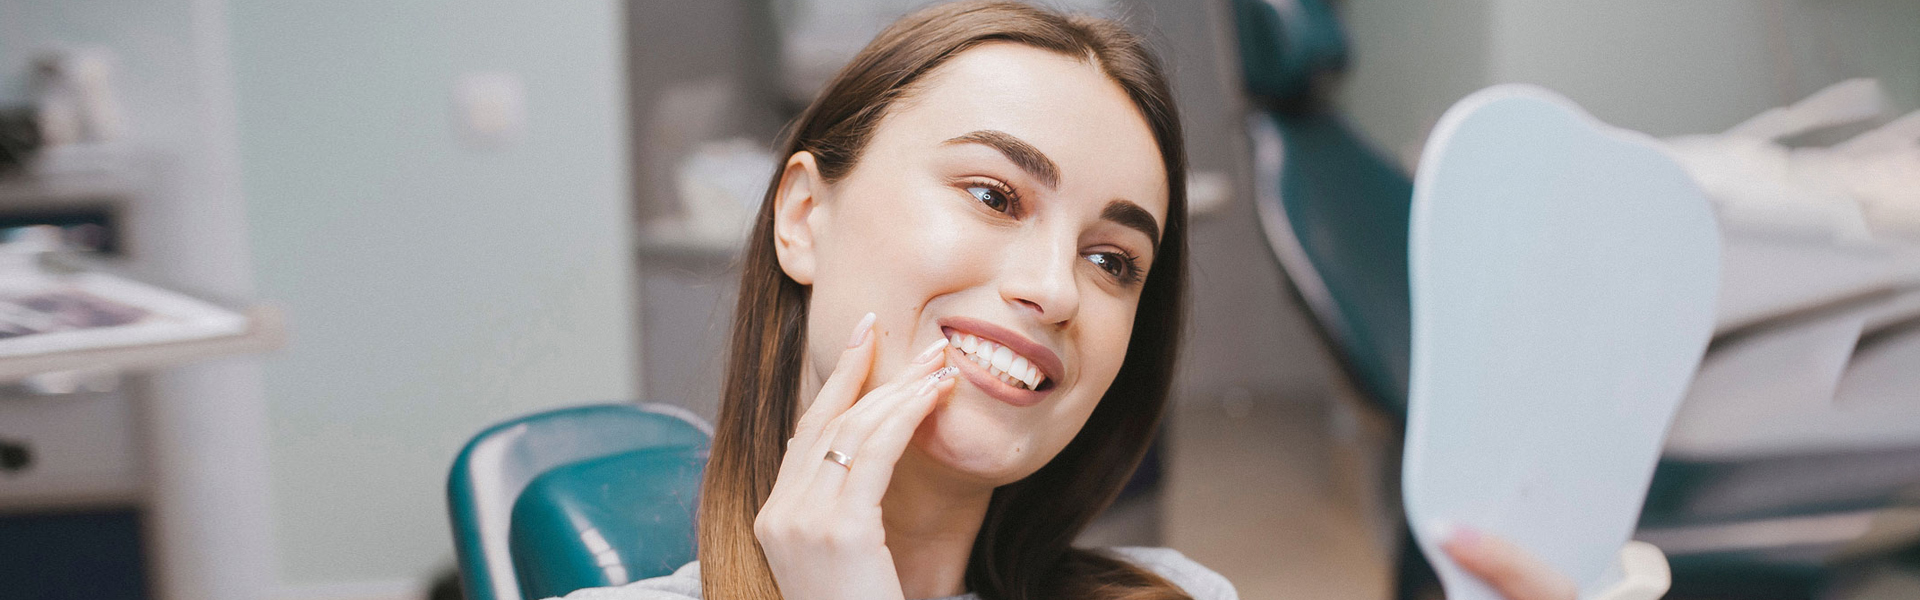 Five Benefits of Cosmetic Dentistry